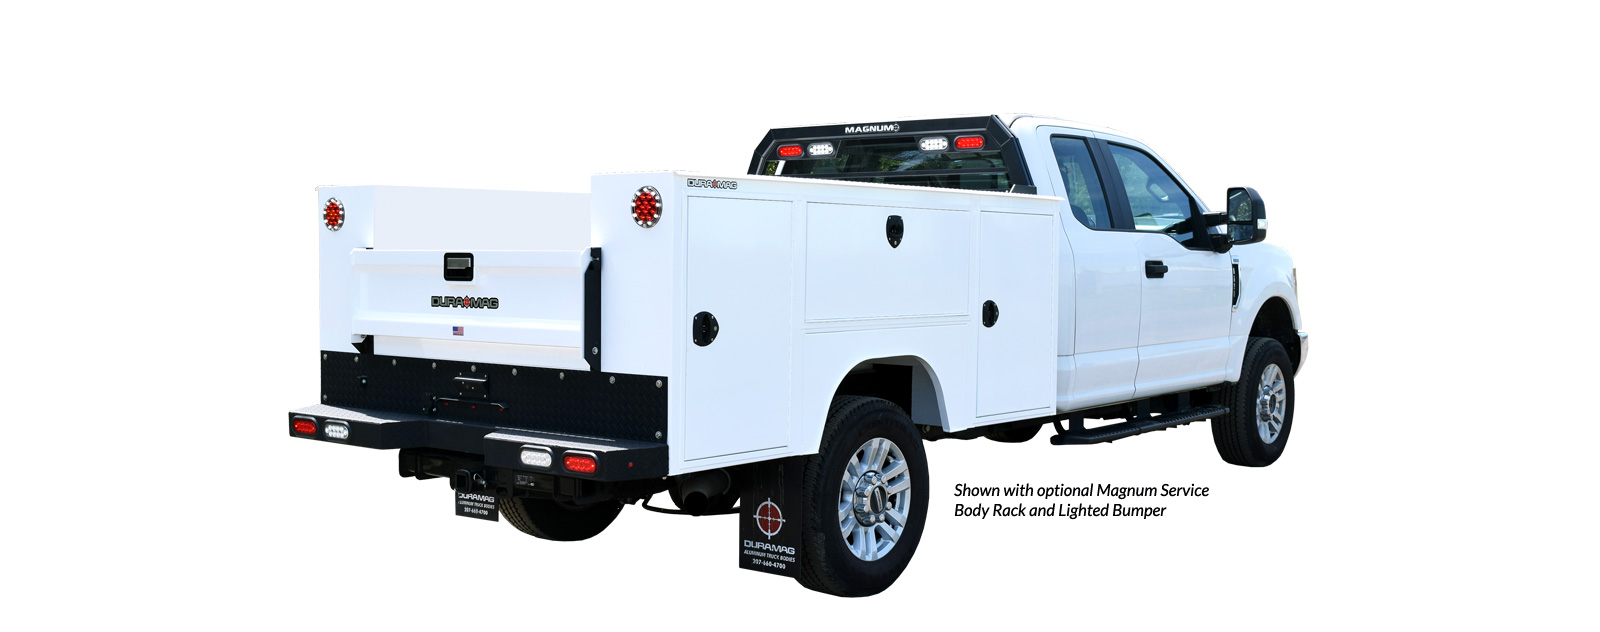 F3 Manufacturing S-Series Service Bodies - Dual Rear Wheel - 9' - Cab Chassis - Universal Fit